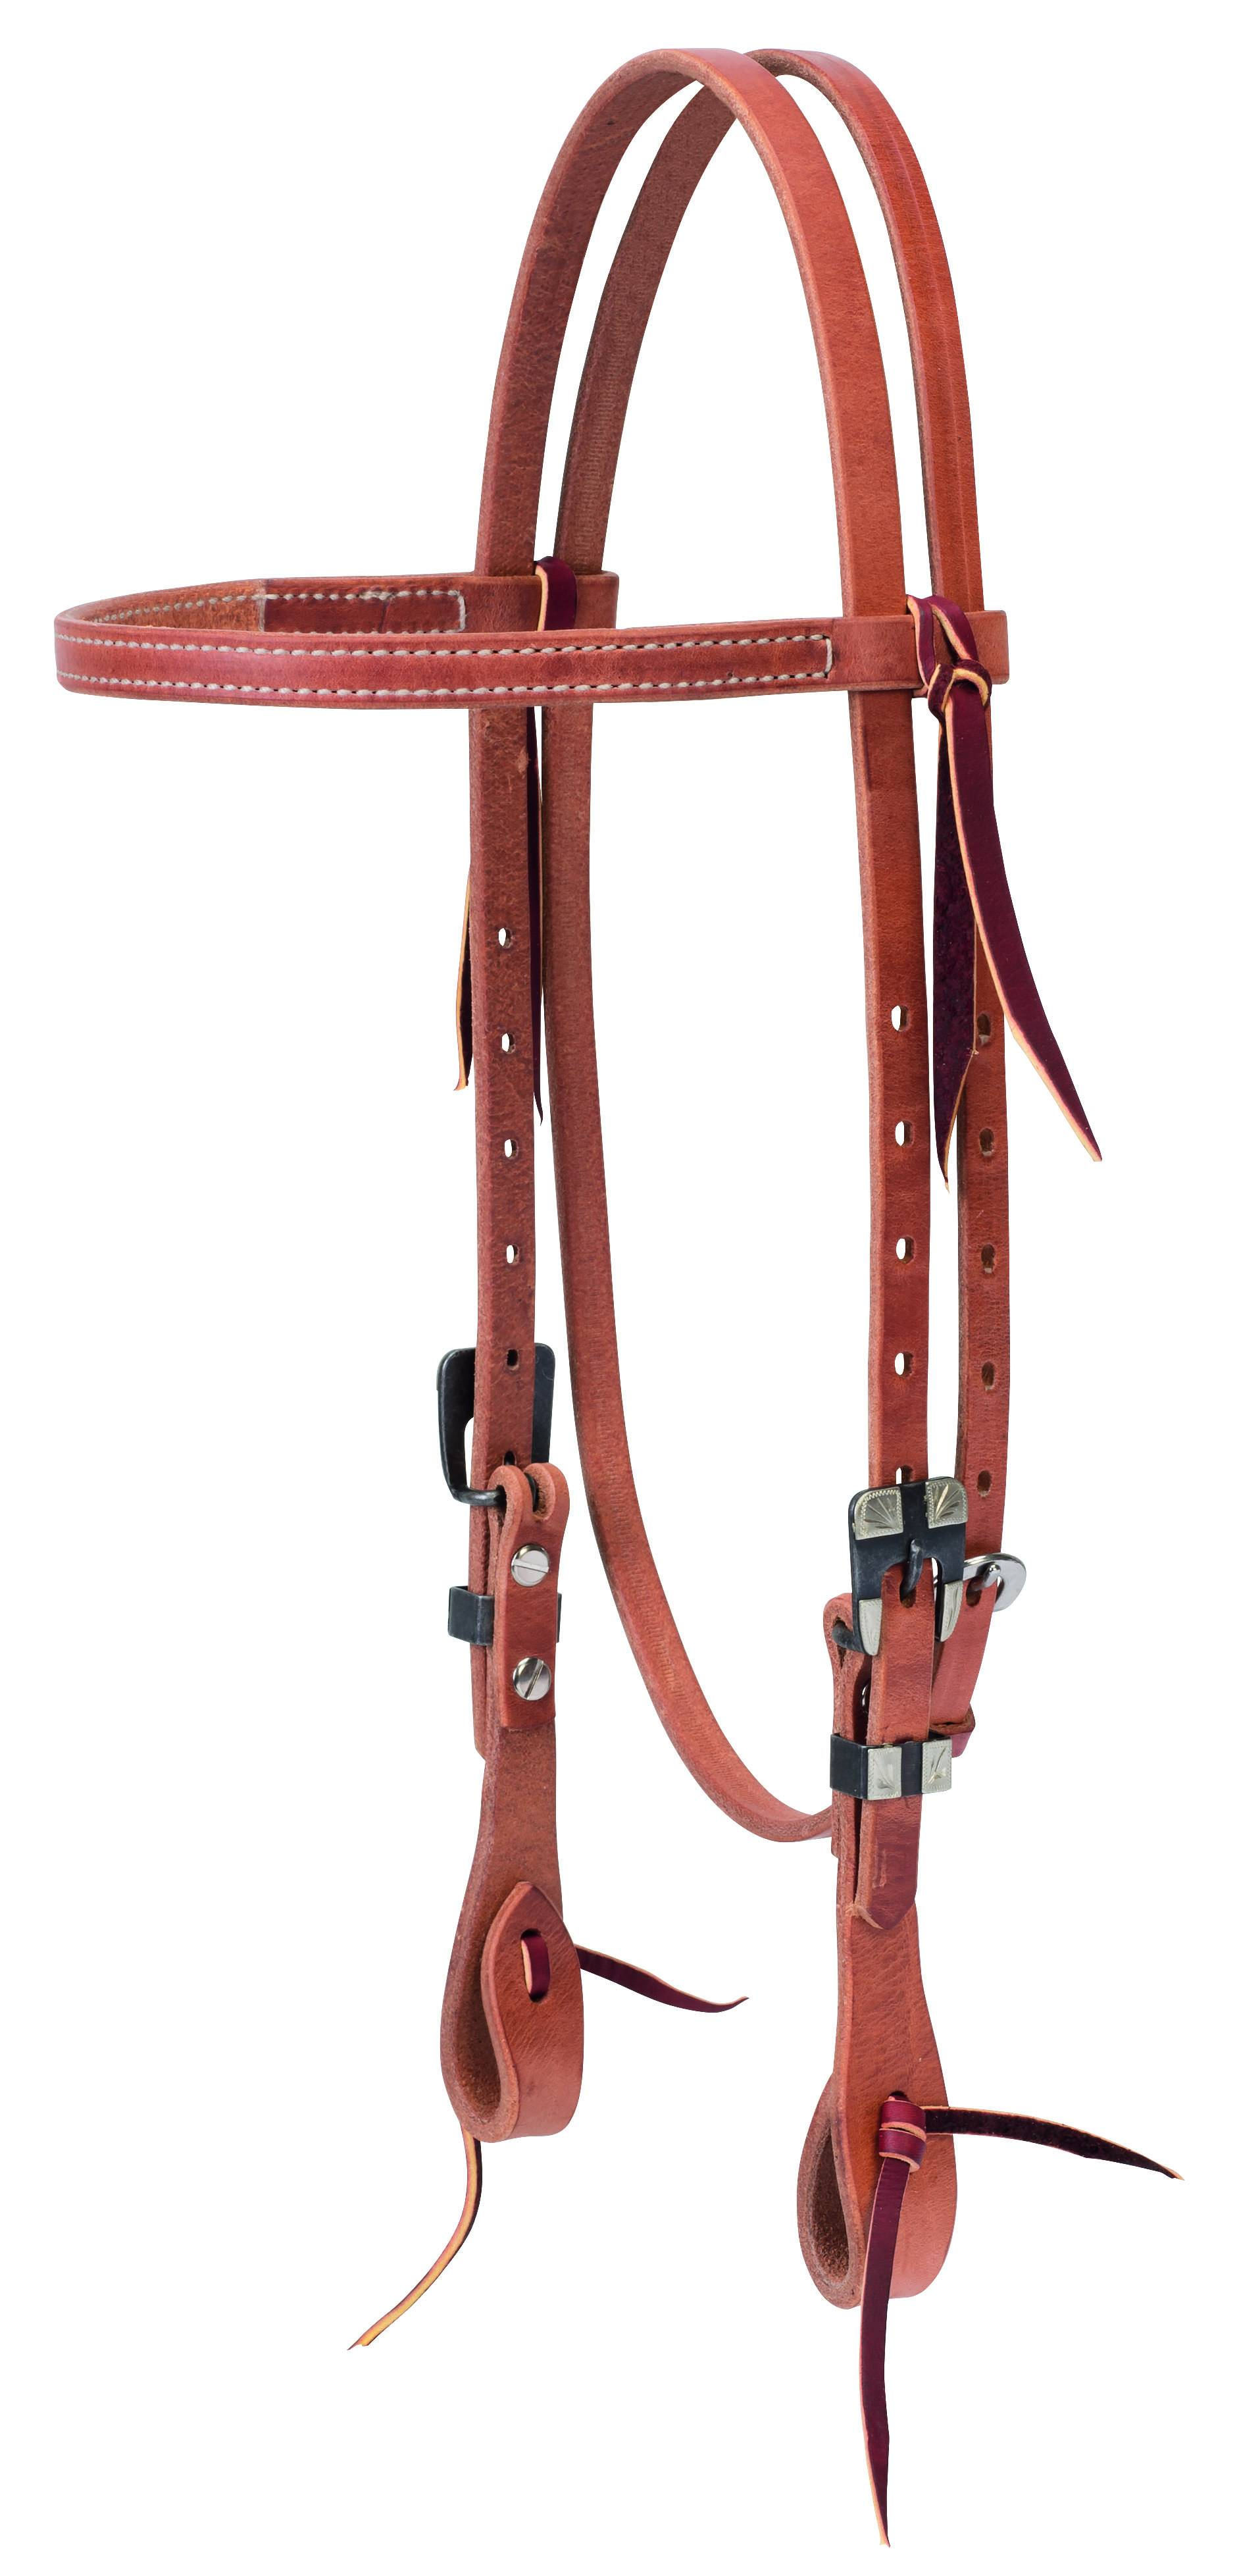 Weaver Premium Harness Leather Straight Browband Headstall - Buffed Black Hardware